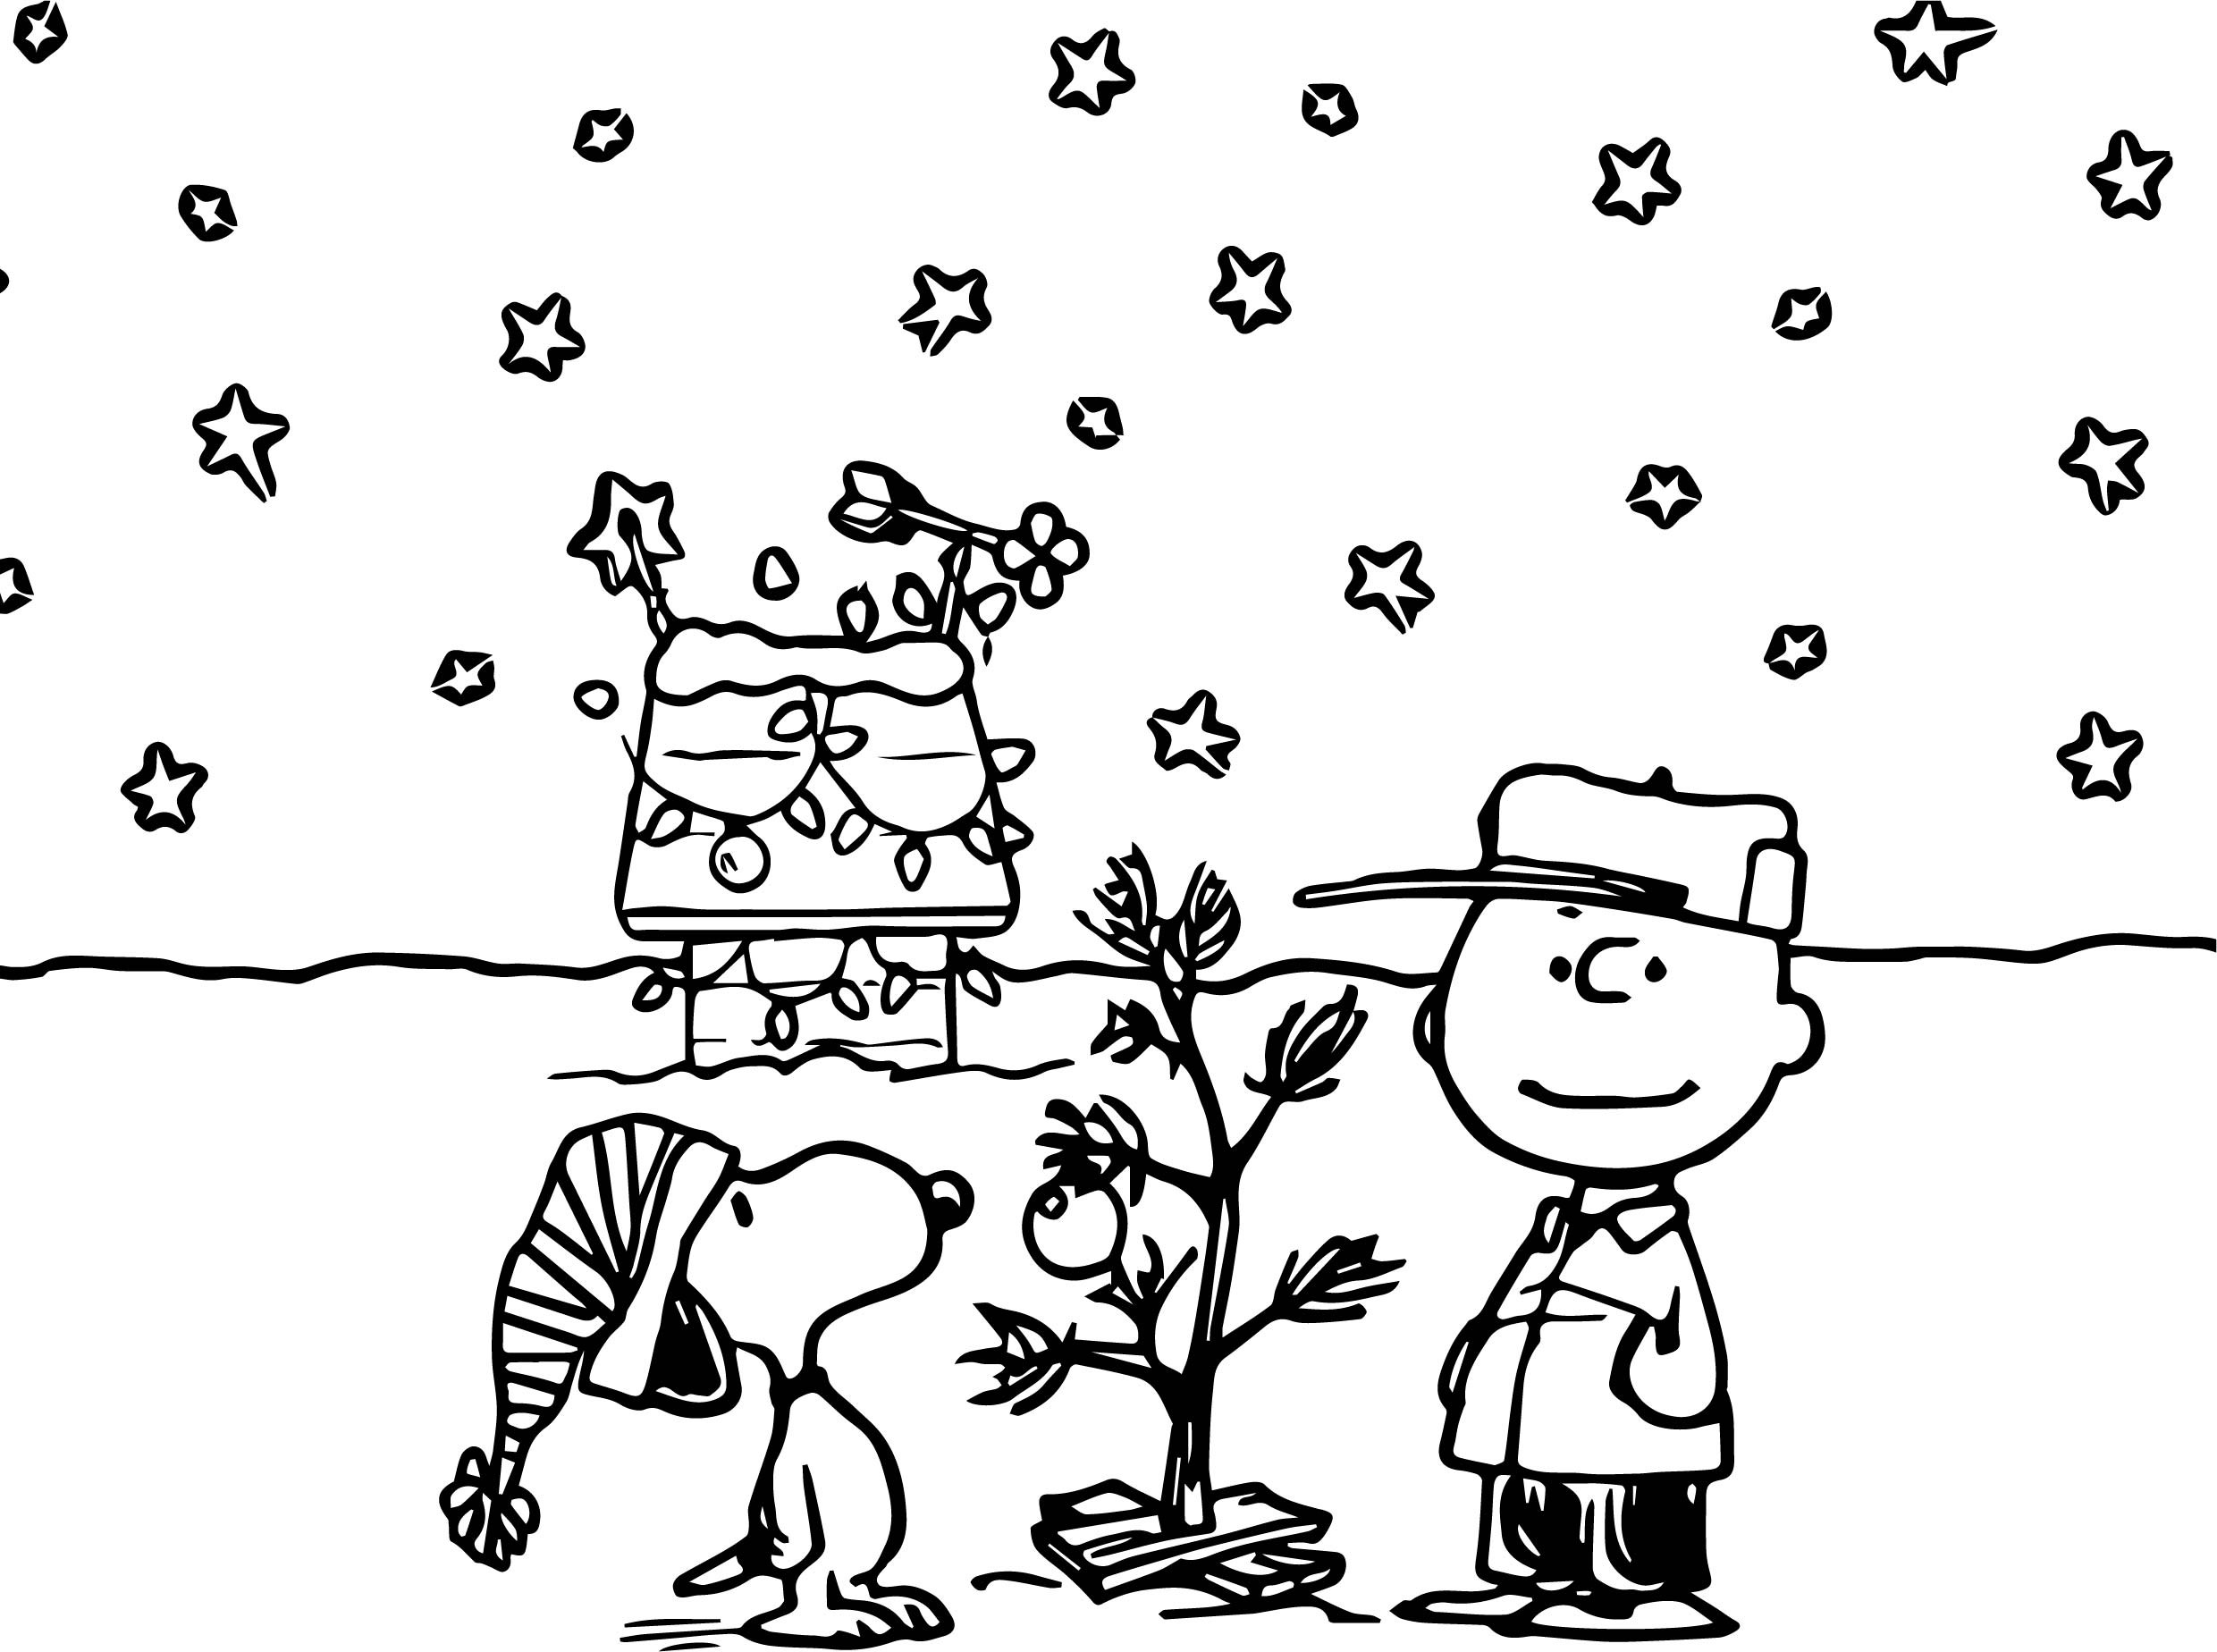 2480x1848 Extraordinary Peanuts Snoopy Gang Coloring Pages Printable Cartoon